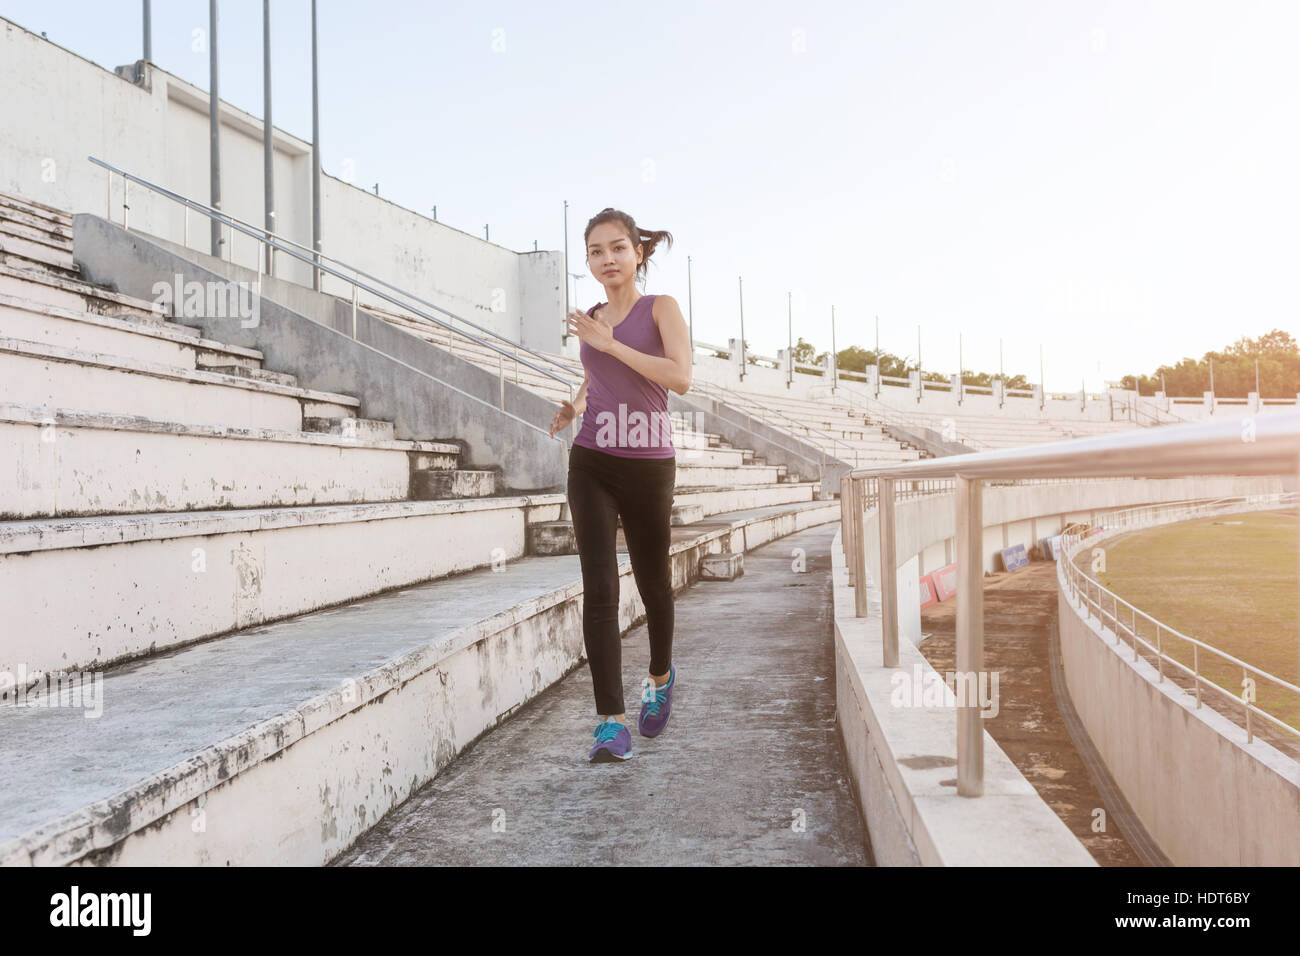 Women runners sprinting outdoors. Sportive people training in a urban area healthy lifestyle and sport concepts. - Stock Image